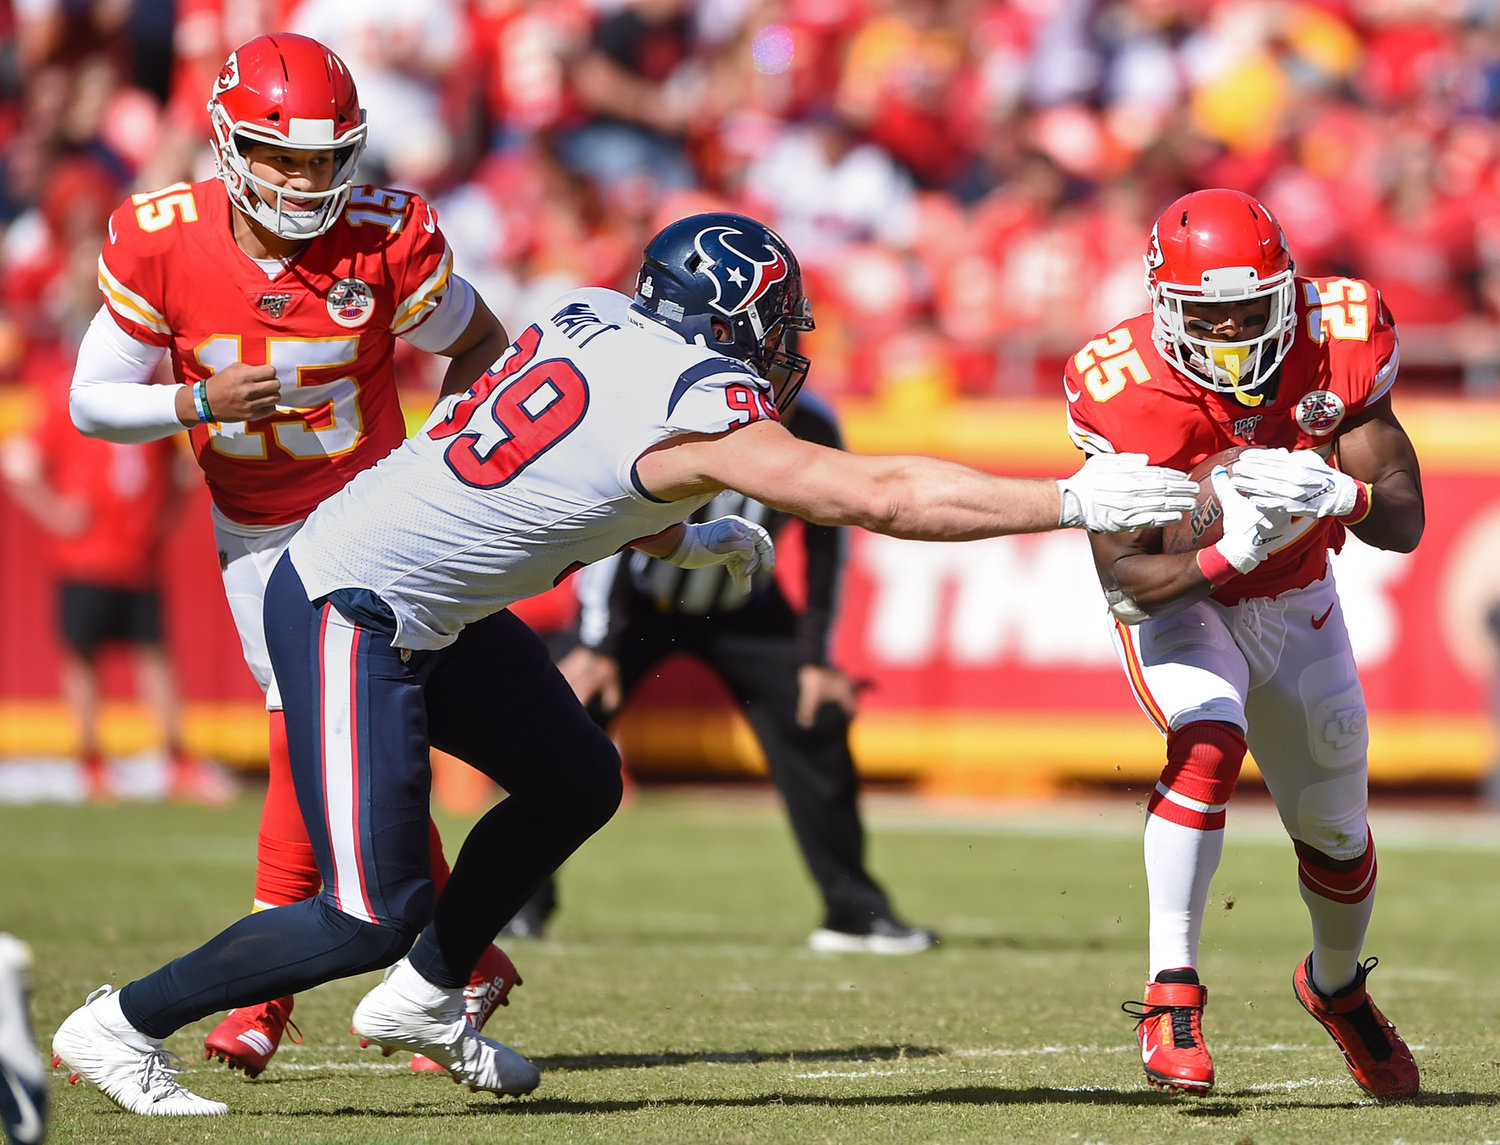 Kansas City Chiefs quarterback Patrick Mahomes had a handoff to Chiefs running back LeSean McCoy (25) as Texans defensive end J.J. Watt (99) went after McCoy during the second half of game action Sunday, Oct. 13, 2019, at Arrowhead Stadium. (Tammy Ljungblad/Kansas City Star/TNS)